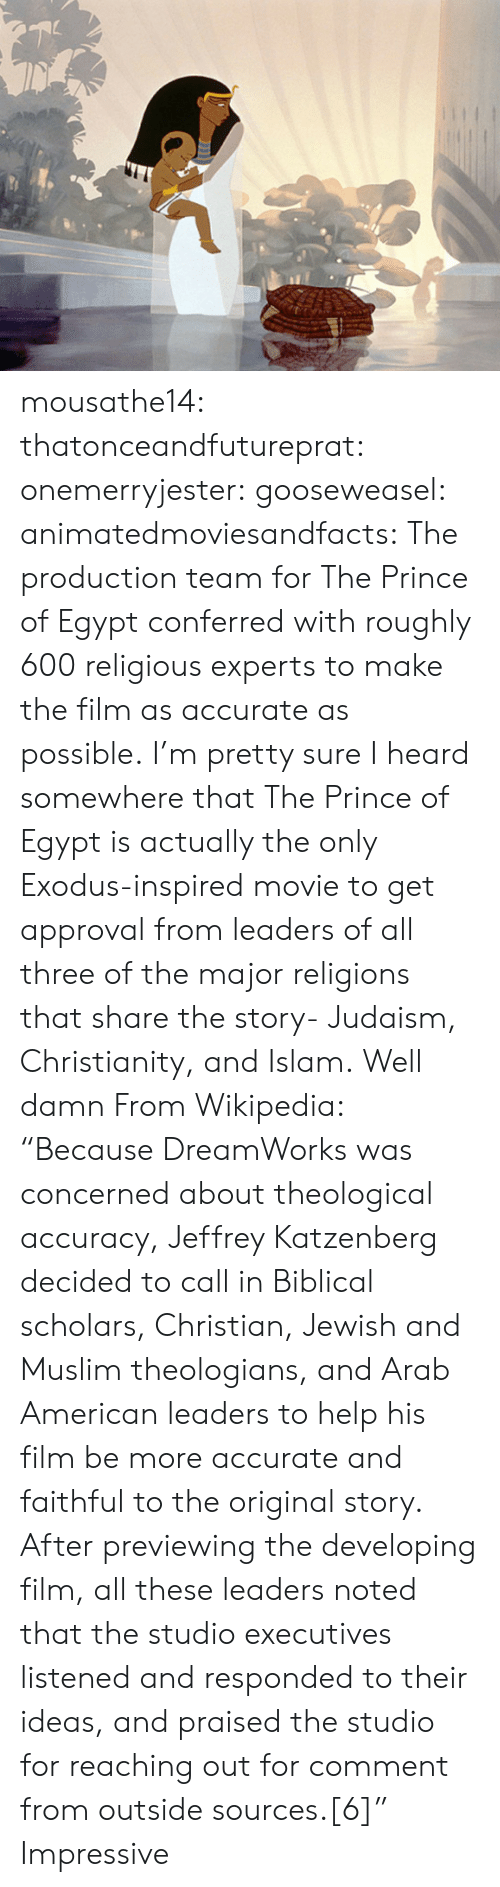 """Exodus: mousathe14:  thatonceandfutureprat:  onemerryjester:  gooseweasel:  animatedmoviesandfacts:  The production team for The Prince of Egypt conferred with roughly 600 religious experts to make the film as accurate as possible.  I'm pretty sure I heard somewhere thatThePrince of Egypt is actually the only Exodus-inspired movie to get approval from leaders of all three of the major religions that share the story- Judaism, Christianity, and Islam.  Well damn  From Wikipedia: """"Because DreamWorks was concerned about theological accuracy, Jeffrey Katzenberg decided to call in Biblical scholars, Christian, Jewish and Muslim theologians, and Arab American leaders to help his film be more accurate and faithful to the original story. After previewing the developing film, all these leaders noted that the studio executives listened and responded to their ideas, and praised the studio for reaching out for comment from outside sources.[6]""""   Impressive"""